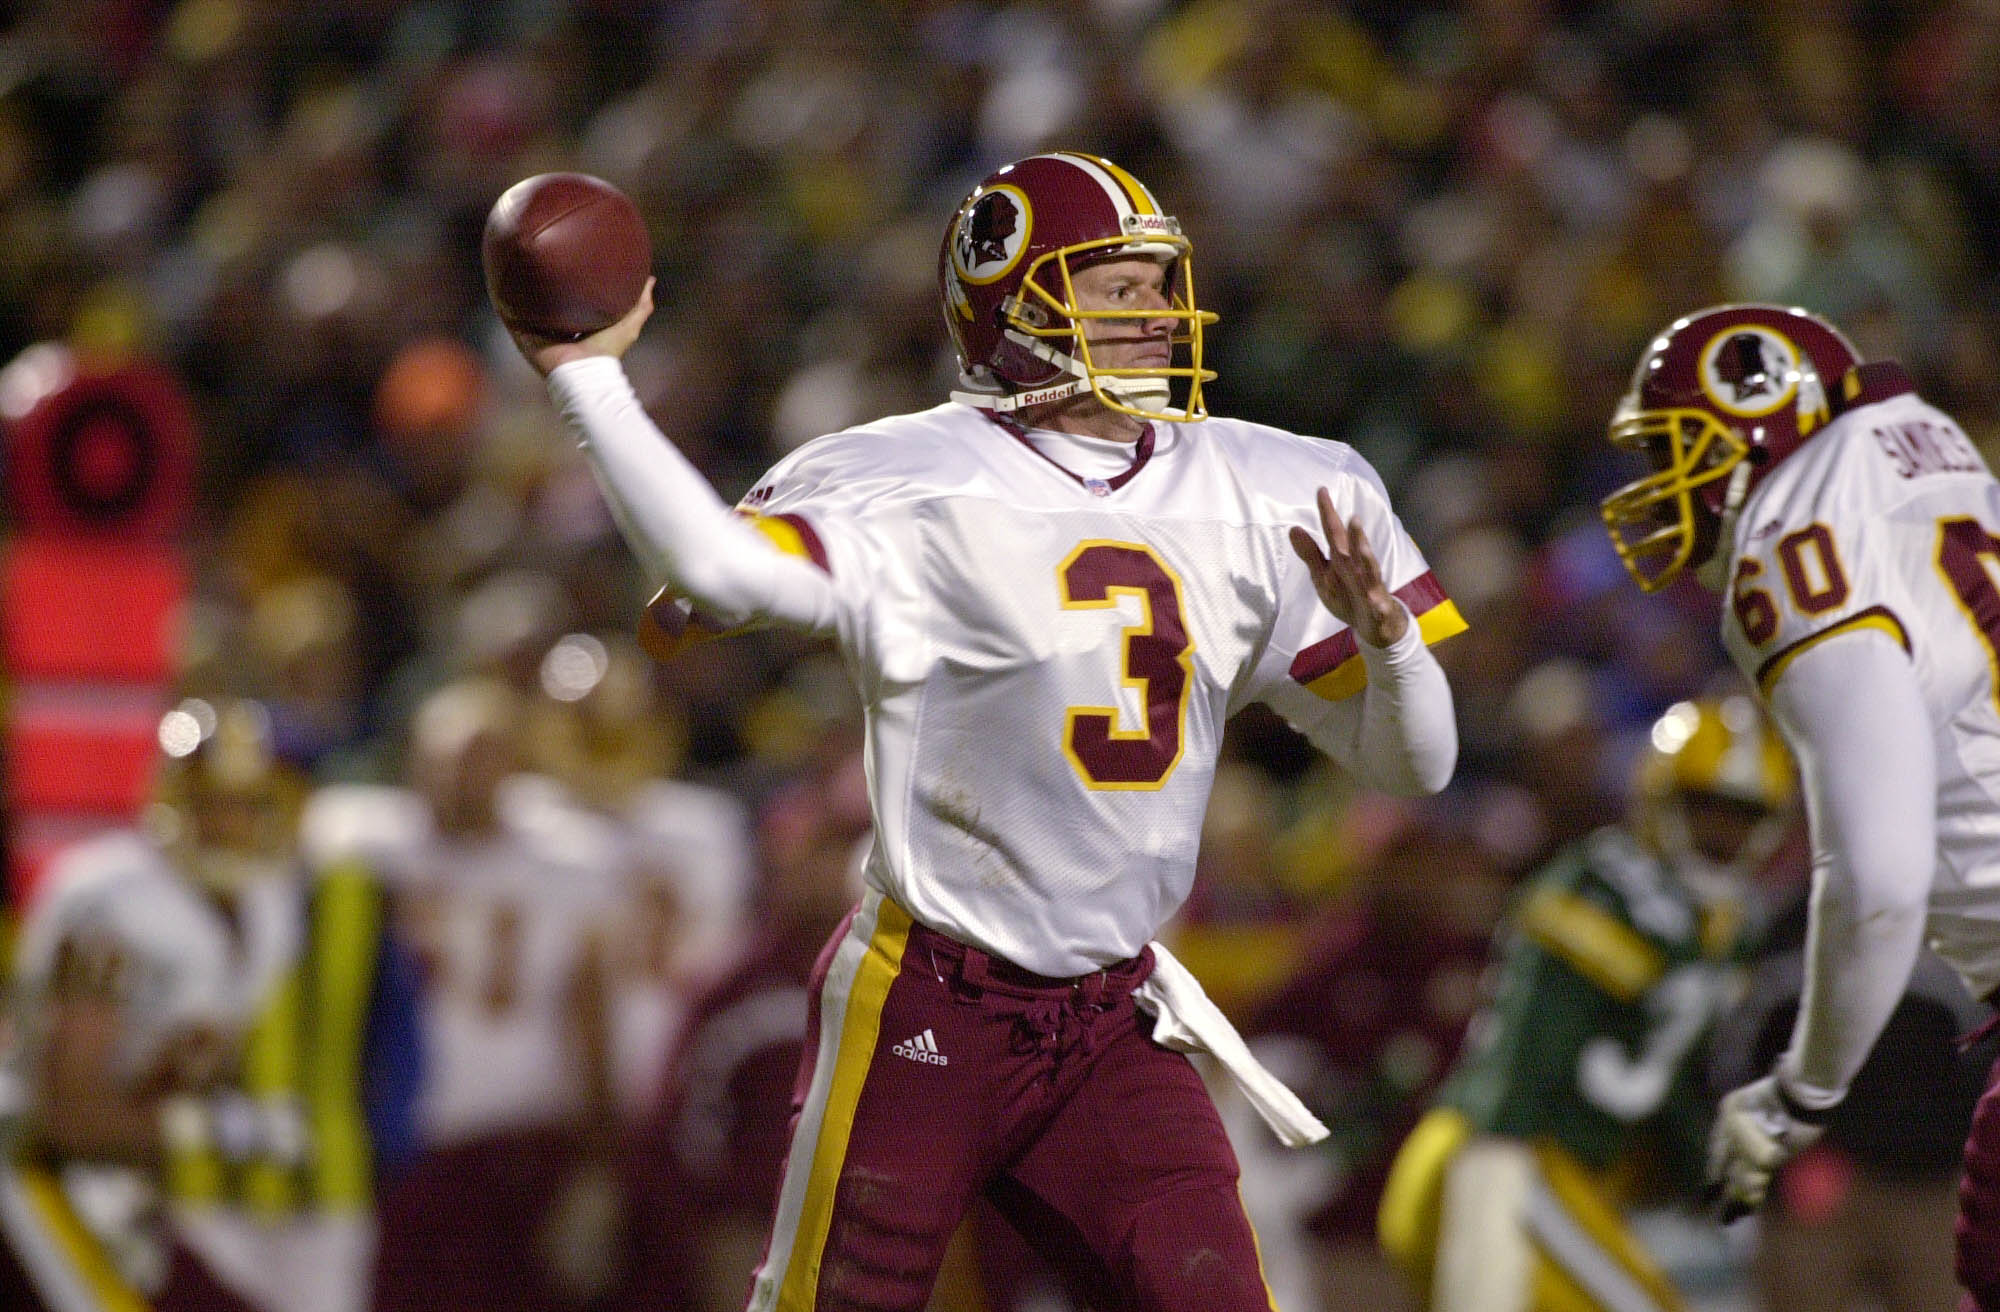 24 Sep 2001: Quarterback Jeff George #3 of the Washington Redskins looks down field for a receiver against the Green Bay Packers during the game at Lambeau Field in Green Bay, Wisconsin. The Redskins were defeated 37-0 by the Packers. DIGITAL IMAGE  Manda